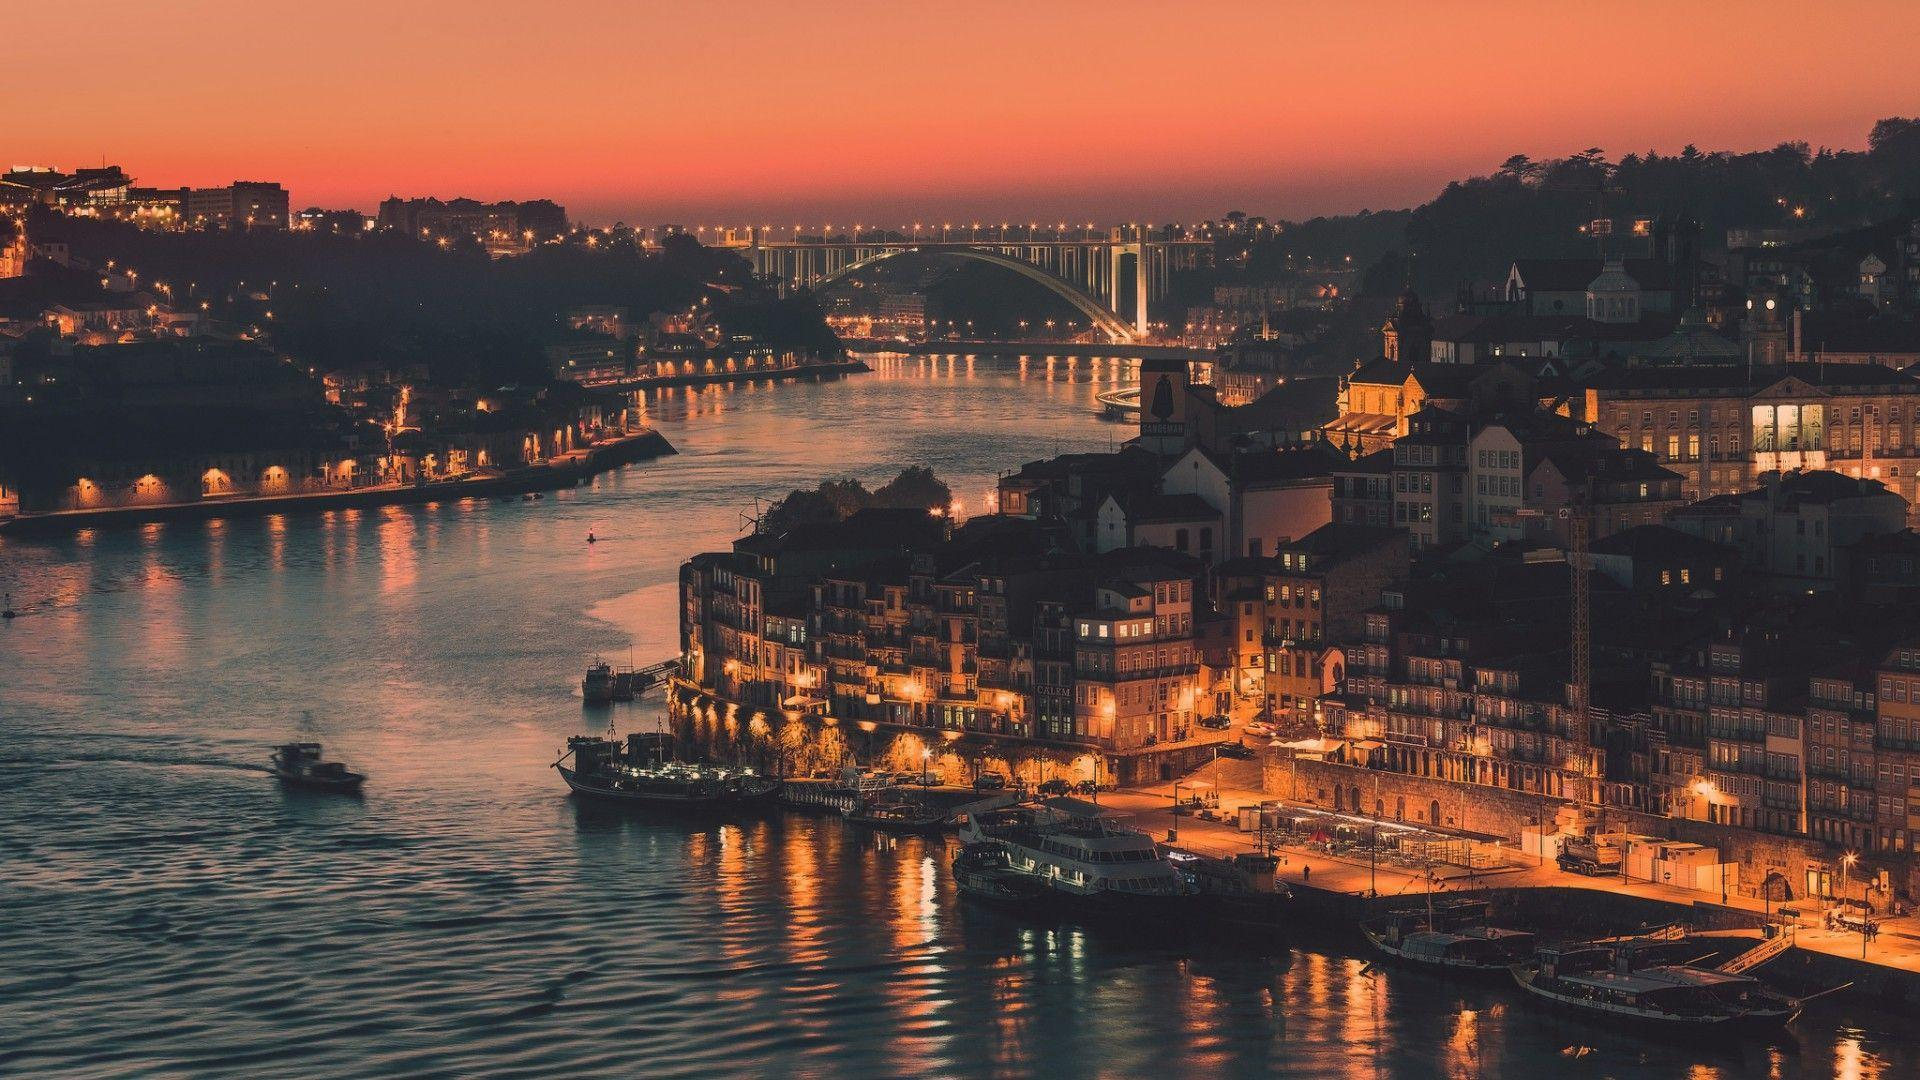 Portugal, the city of Porto 1920x1080 (1080p) - Wallpaper - HD ...